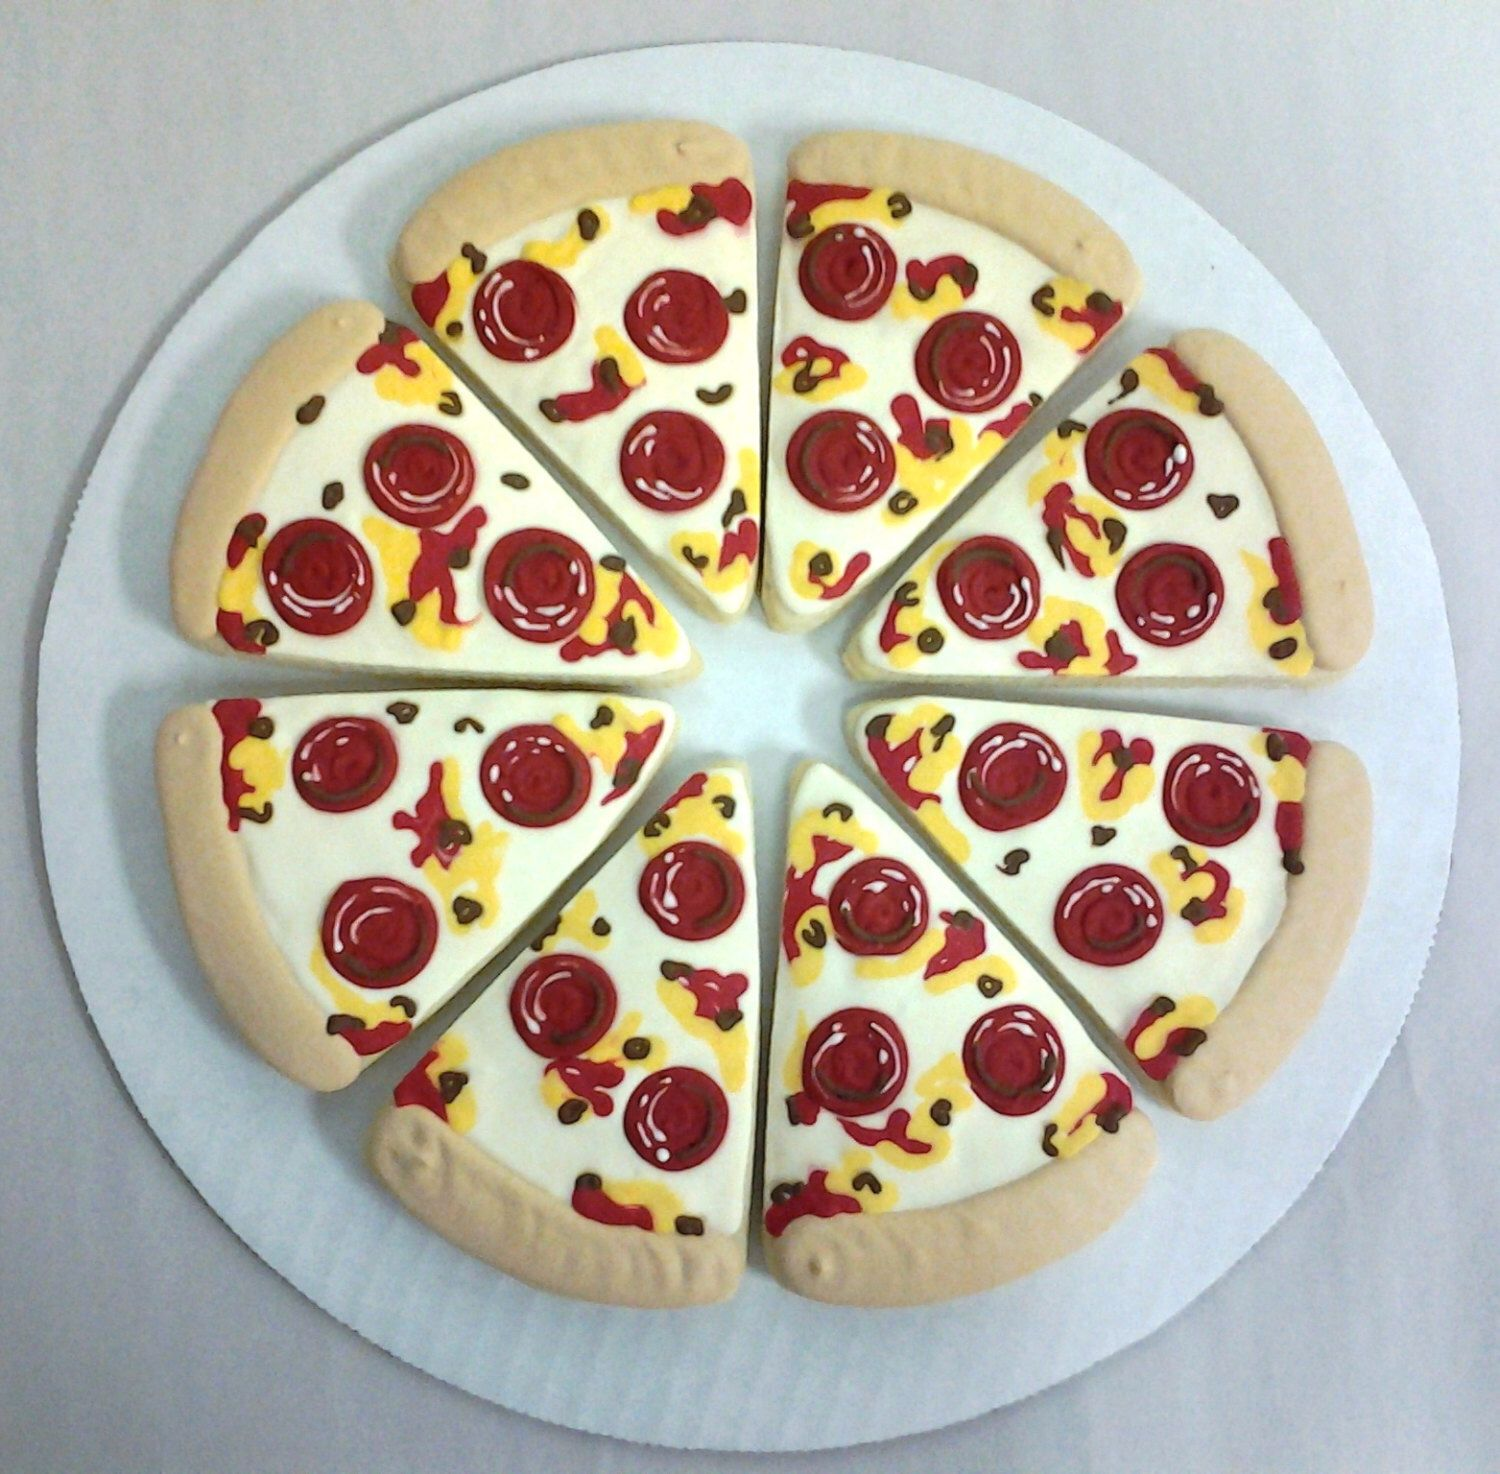 Pizza, Sweet Pizza - Birthday Party or Any Reason Cookies by ClawsonCookies on Etsy https://www.etsy.com/listing/120563013/pizza-sweet-pizza-birthday-party-or-any